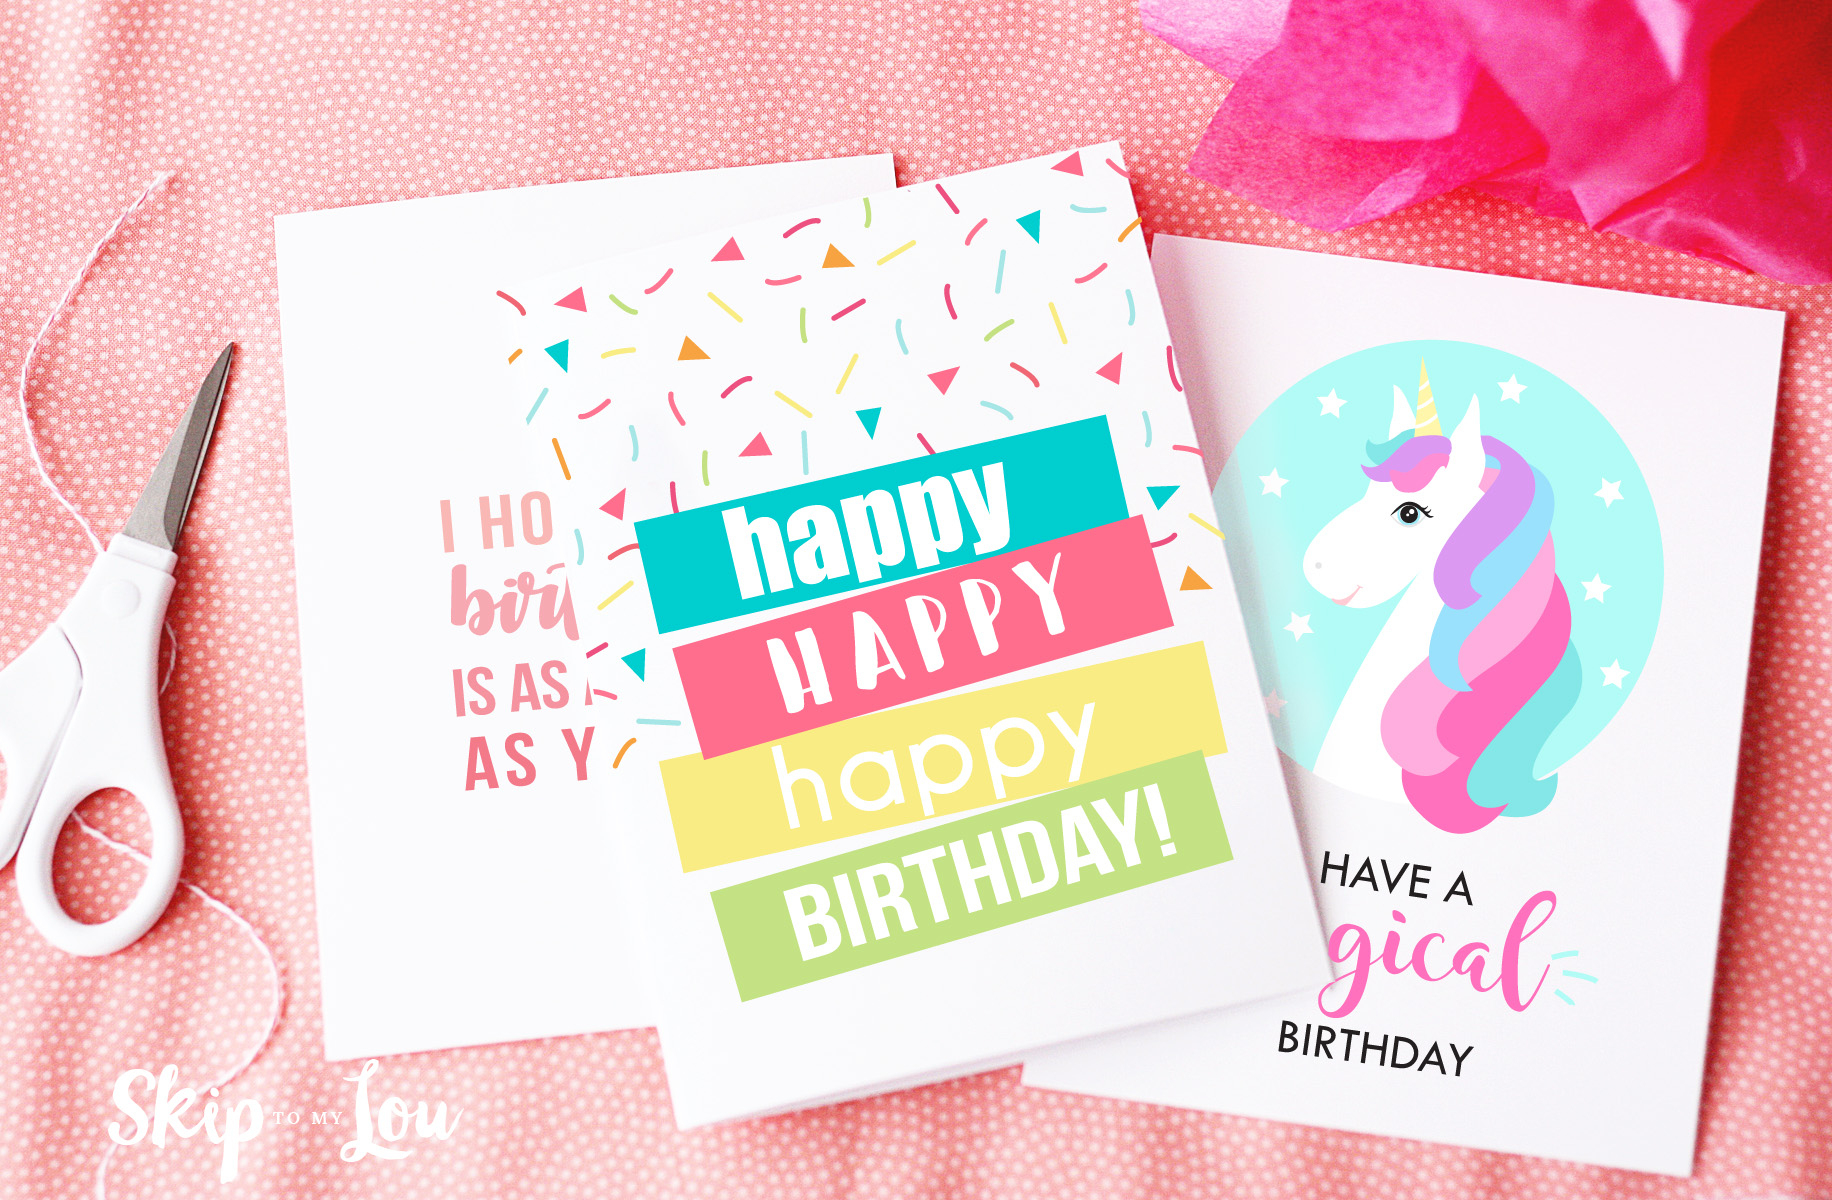 Free Printable Birthday Cards | Skip To My Lou - Free Printable Birthday Cards For Adults